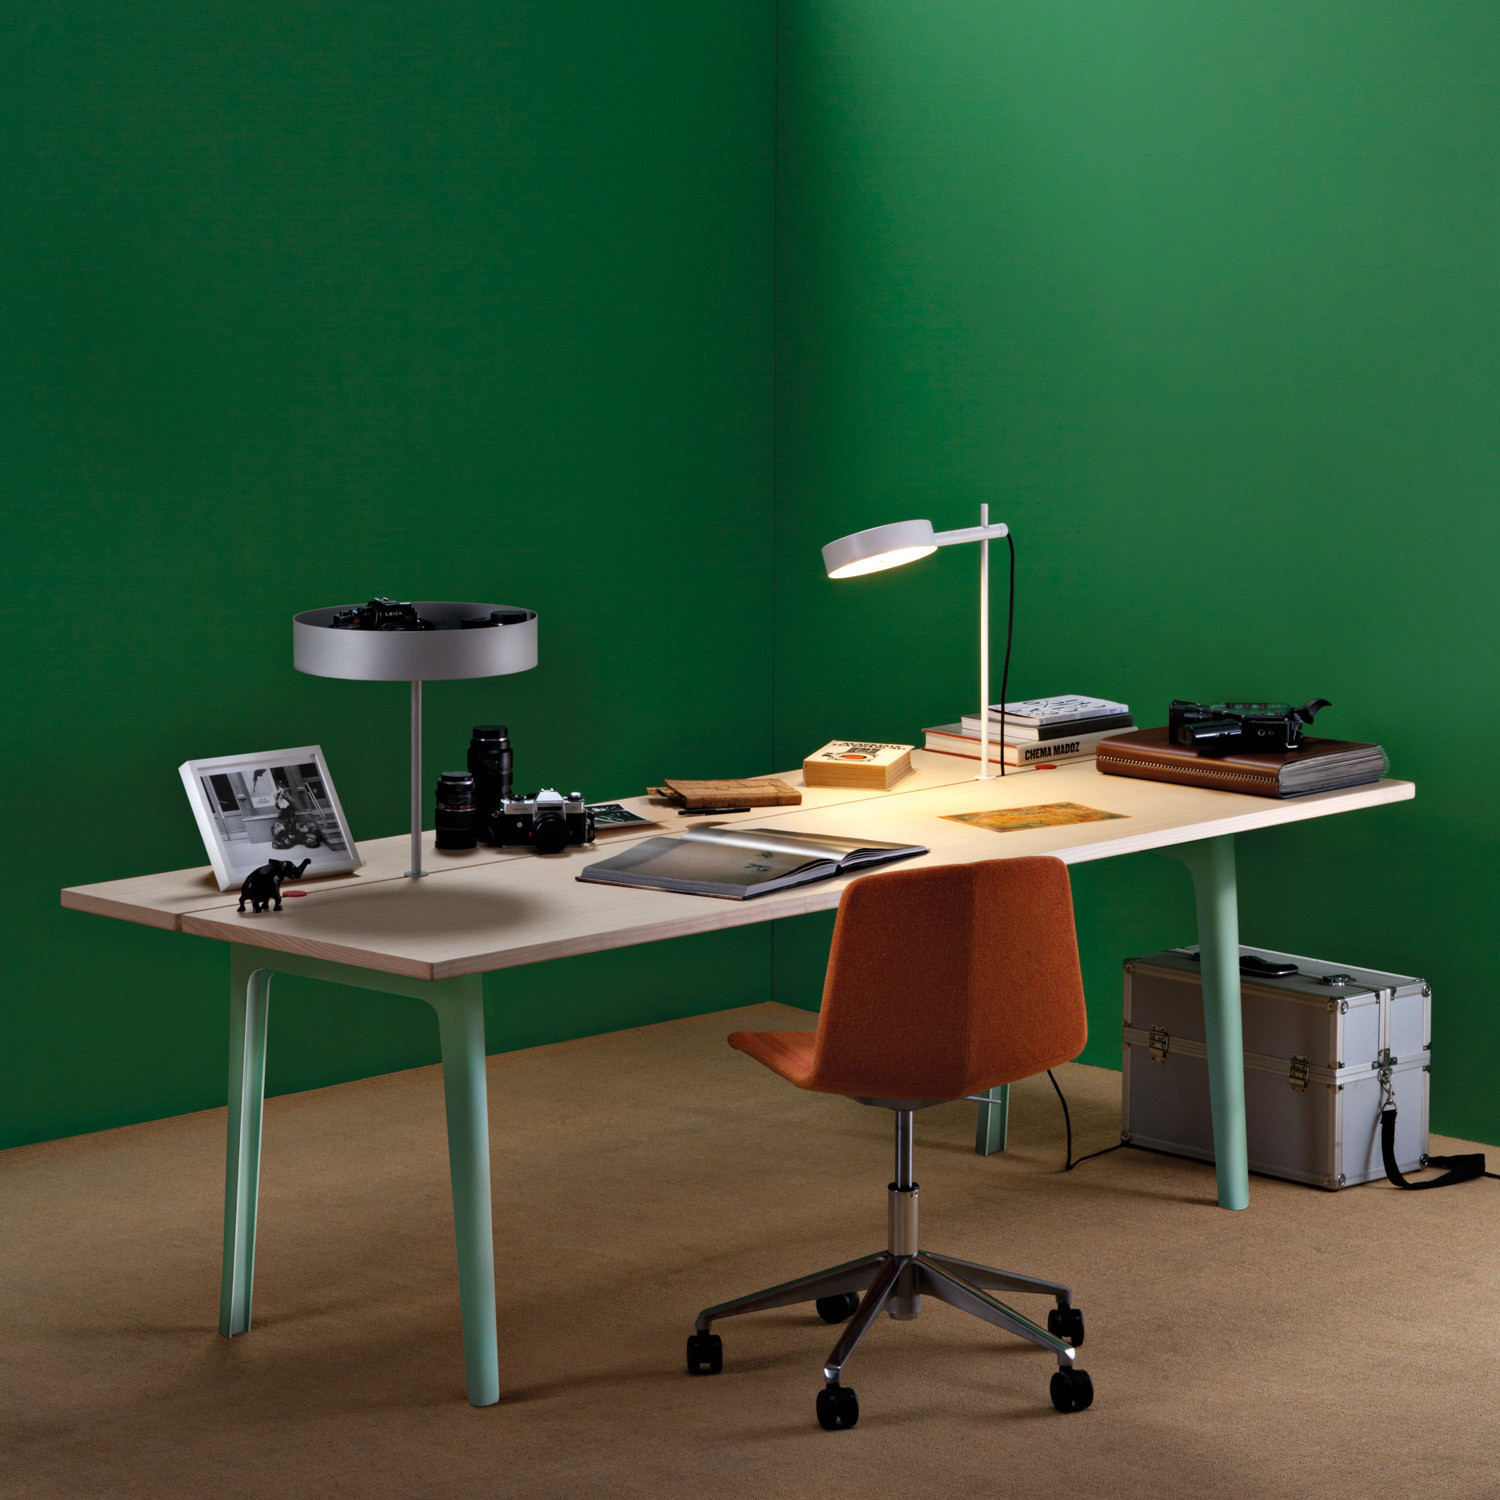 MaxDesign Offset Table